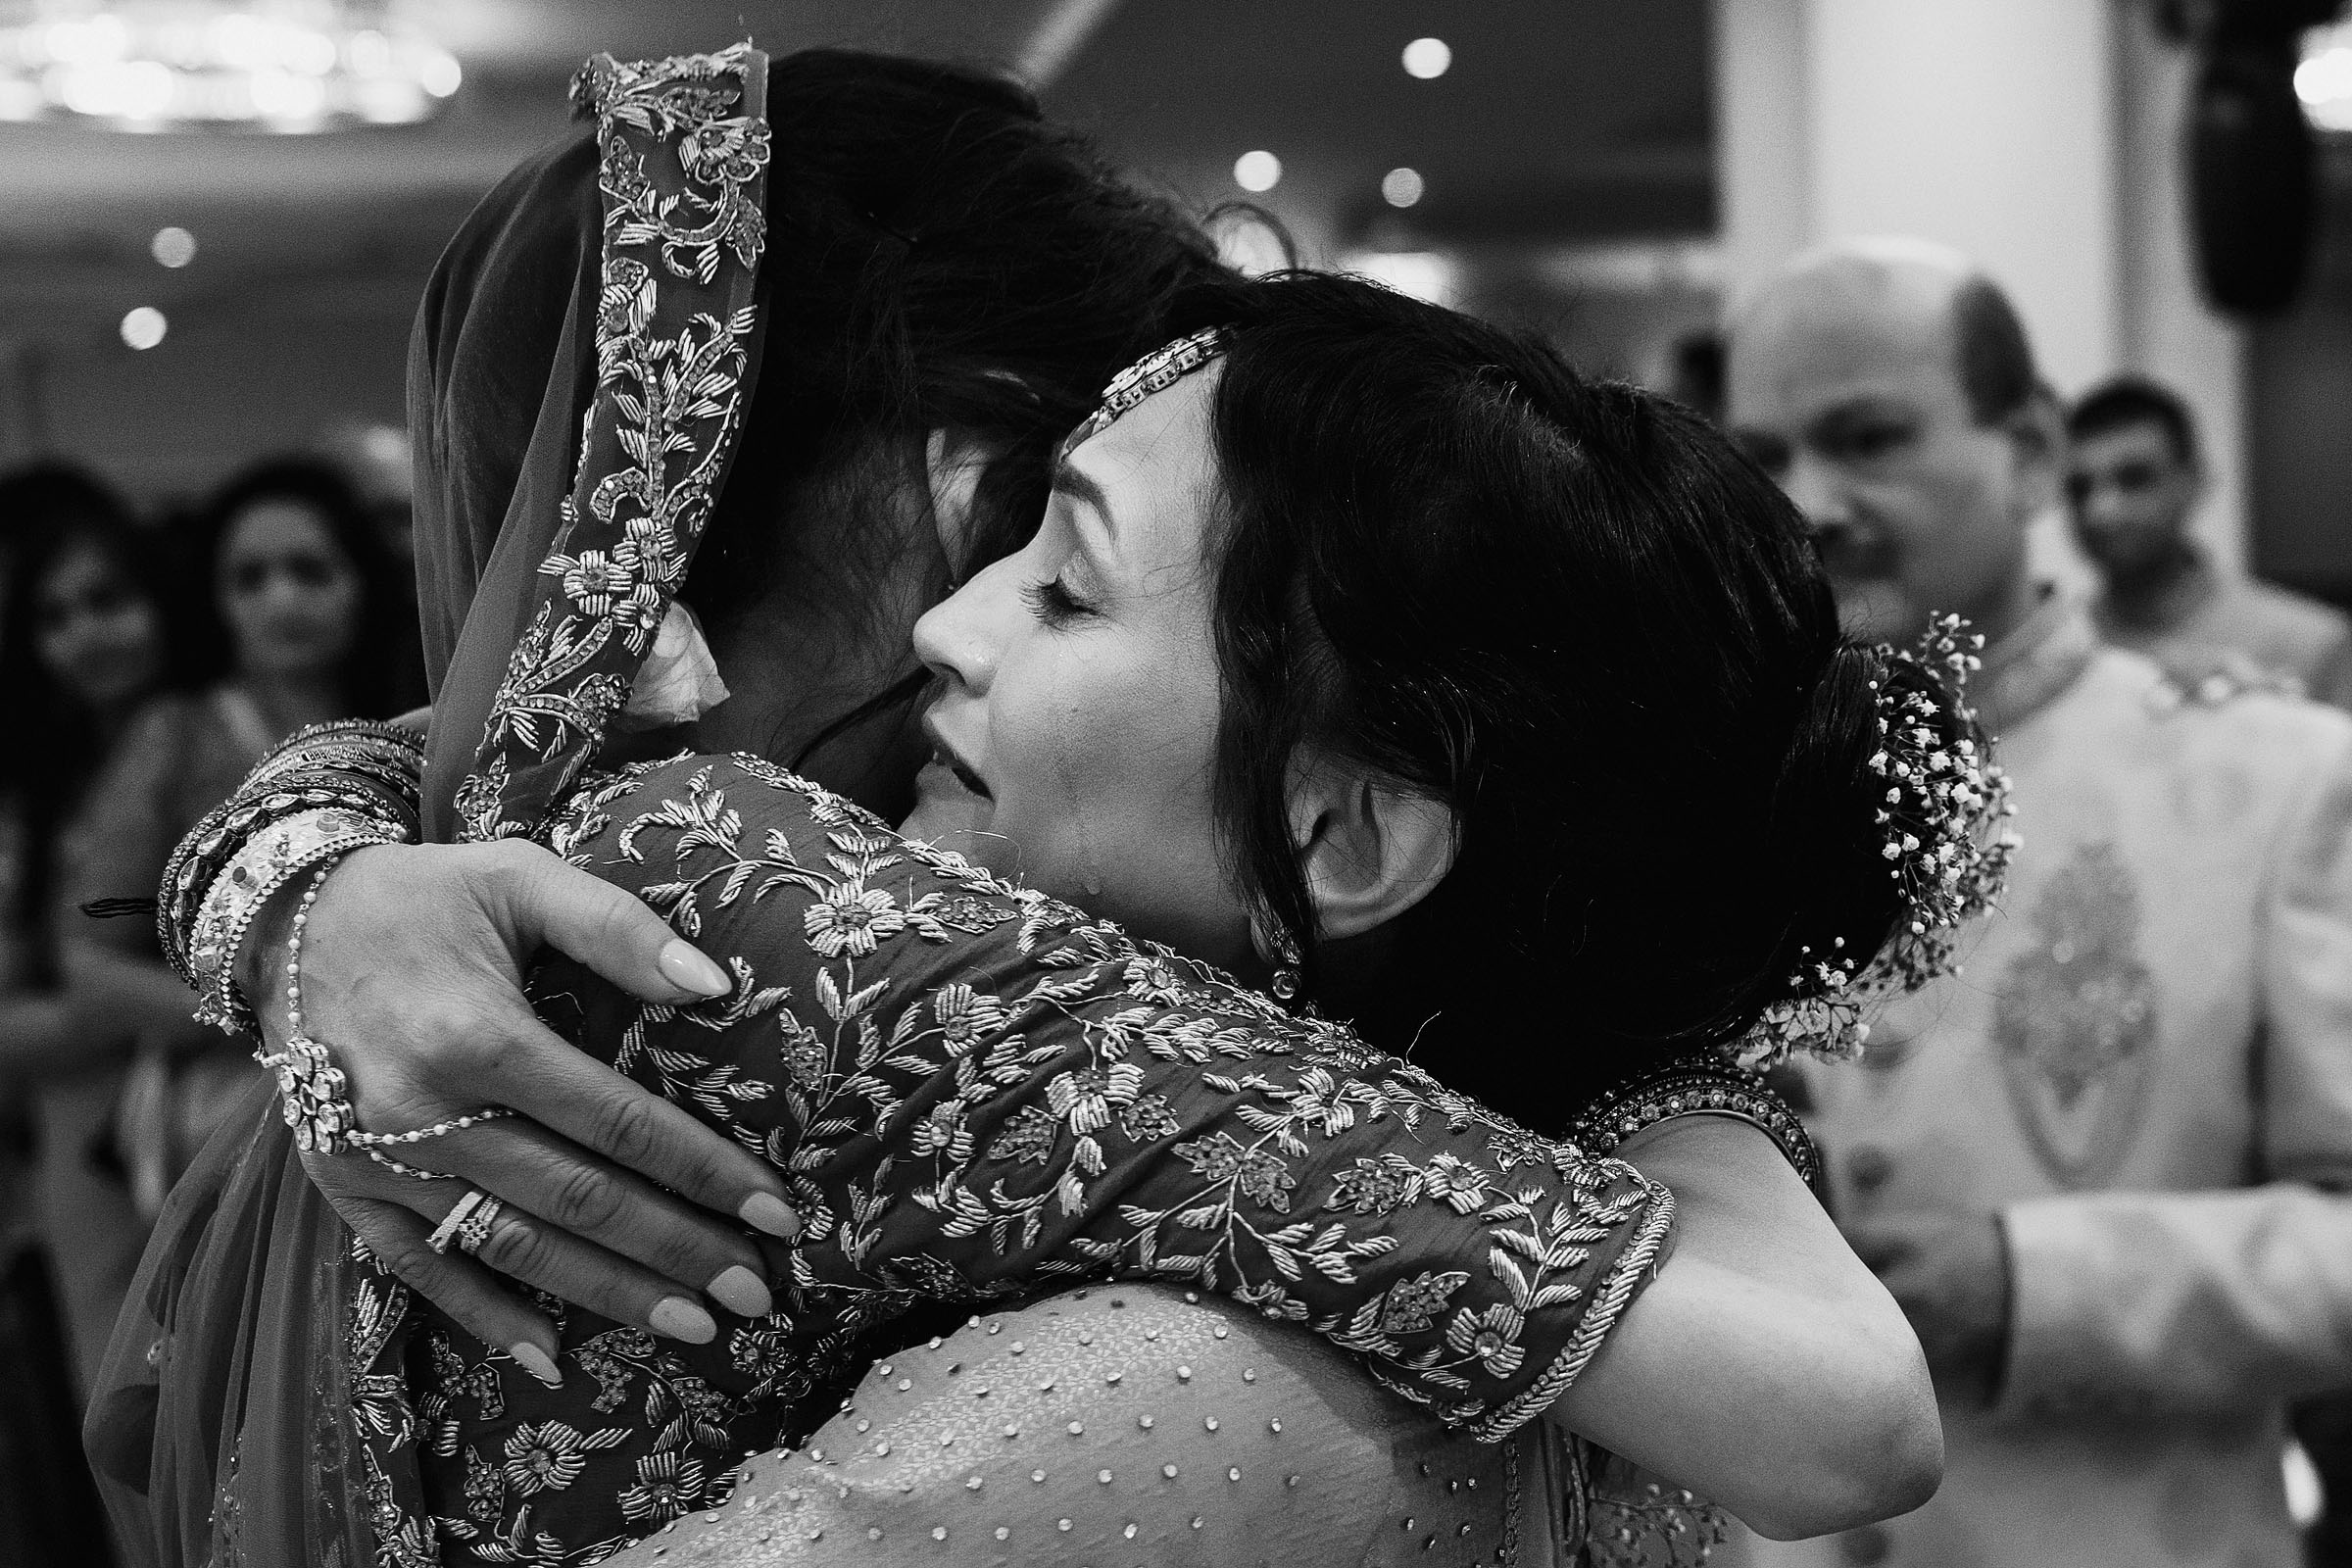 Bride and mother embracing - Photo by F5 Photography